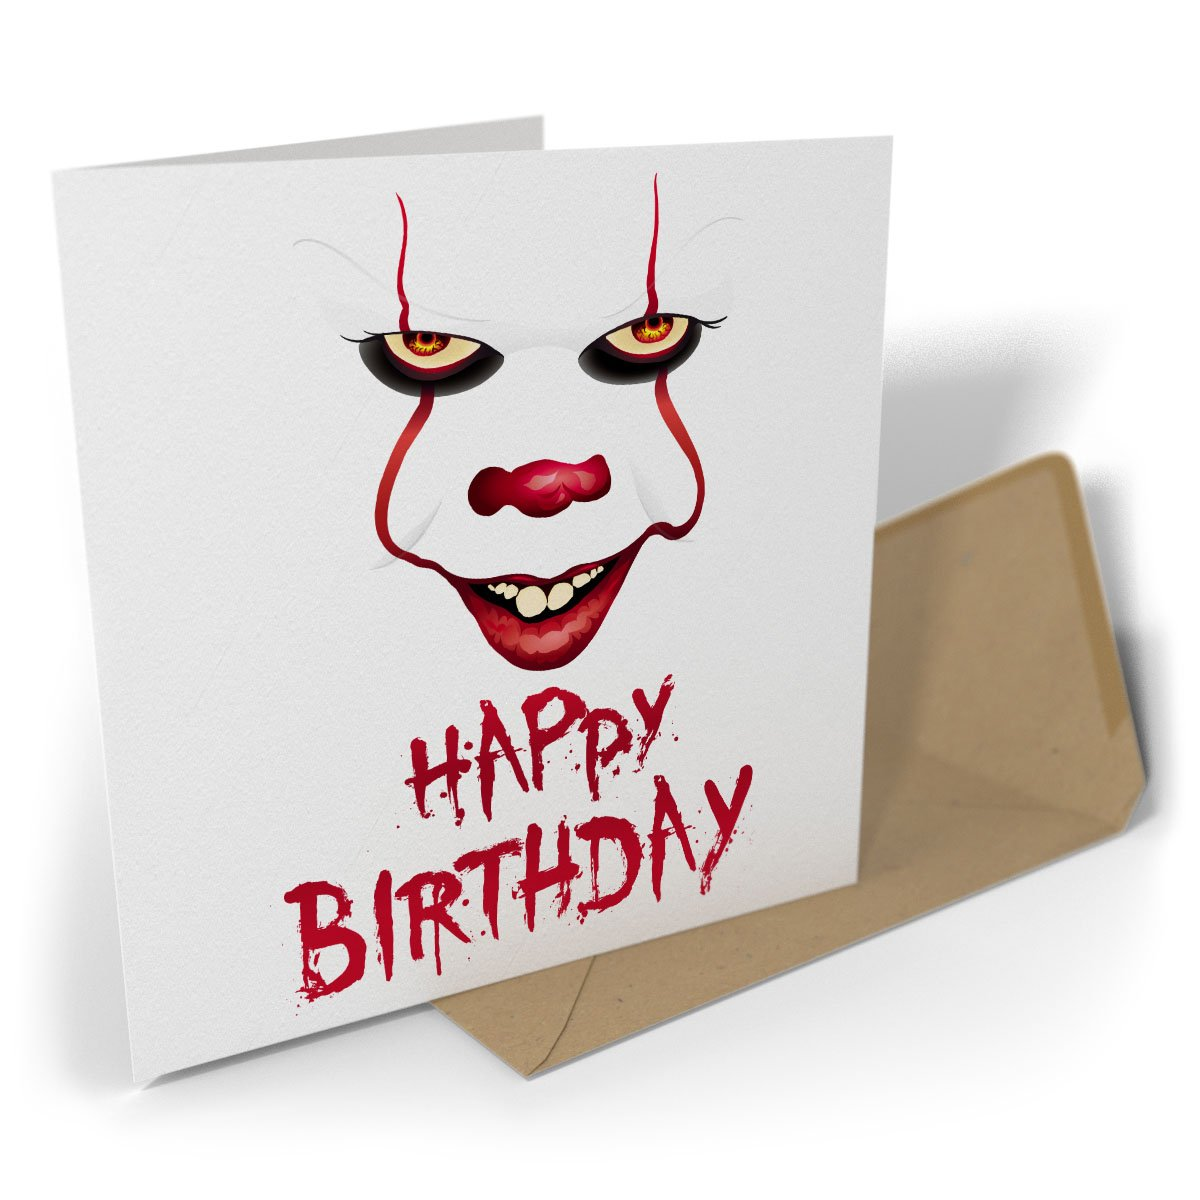 Greetings Card: Happy Birthday | Clown Black Raven Design